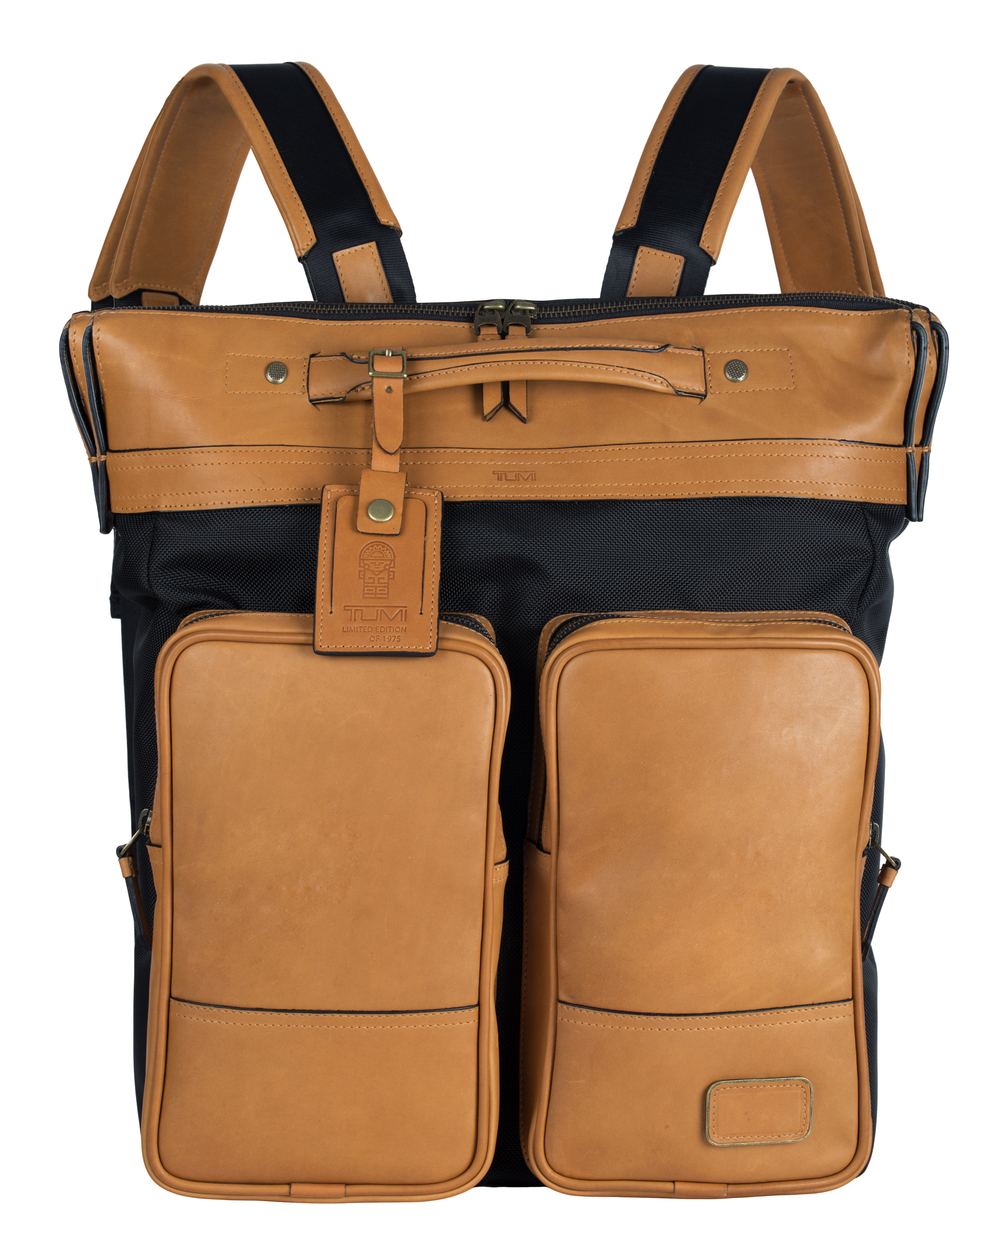 TUMI 1975 Collection Rucksack Backpack (55051) HK$7,590.jpg